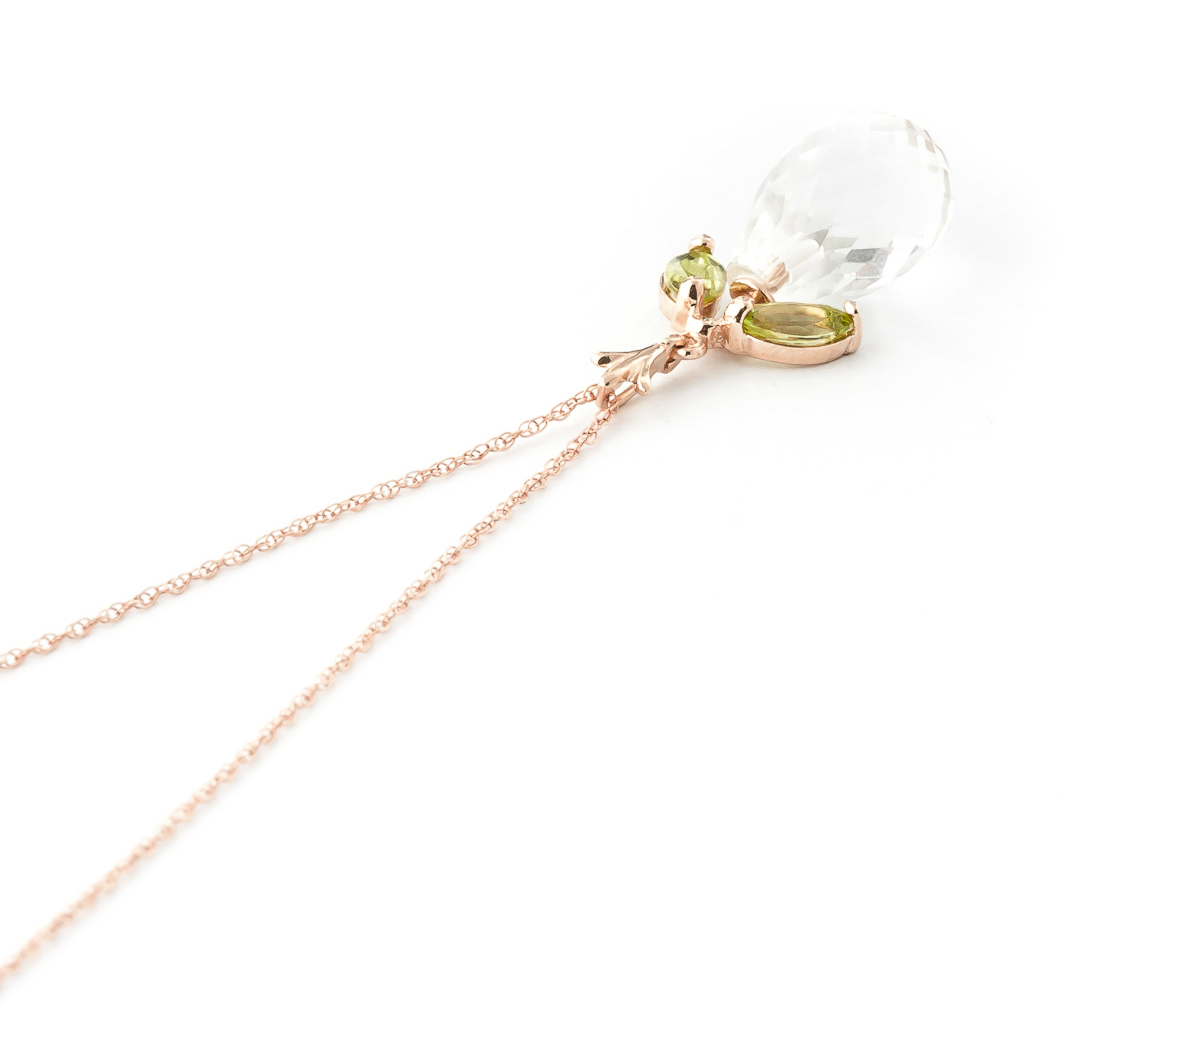 White Topaz and Peridot Pendant Necklace 7.2ctw in 14K Rose Gold